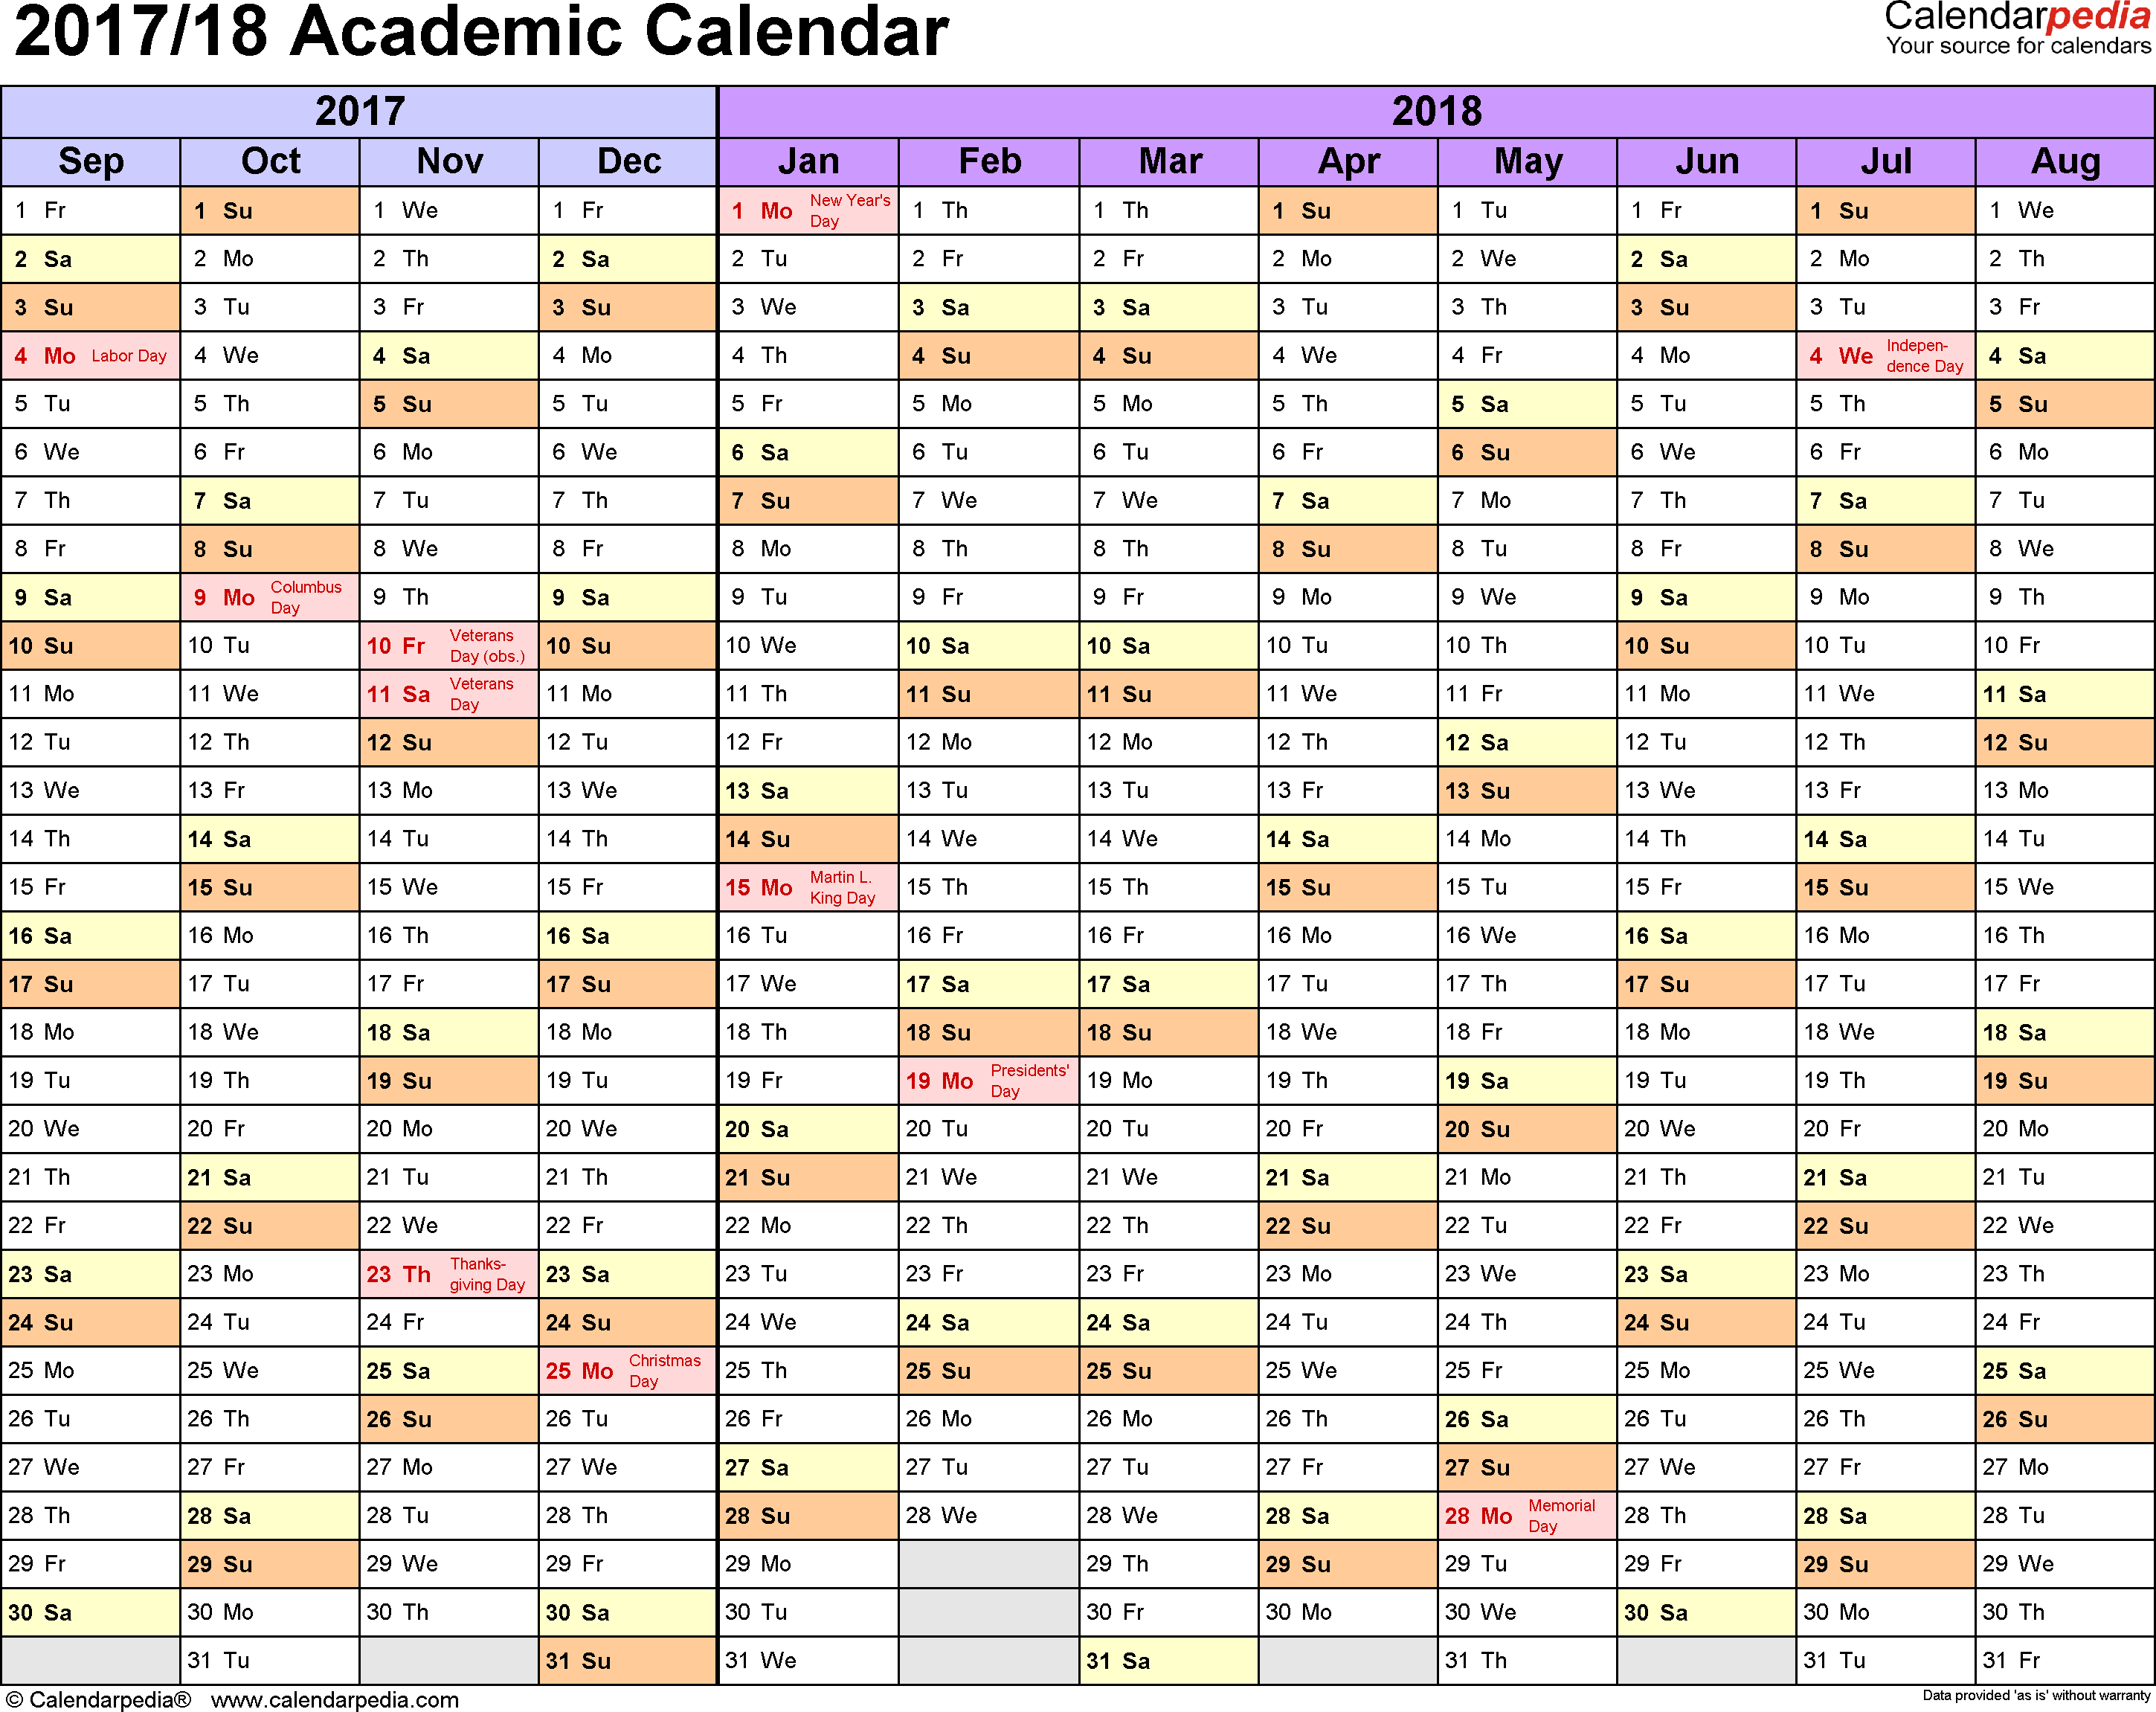 academic calendars 2017 2018 as free printable pdf templates